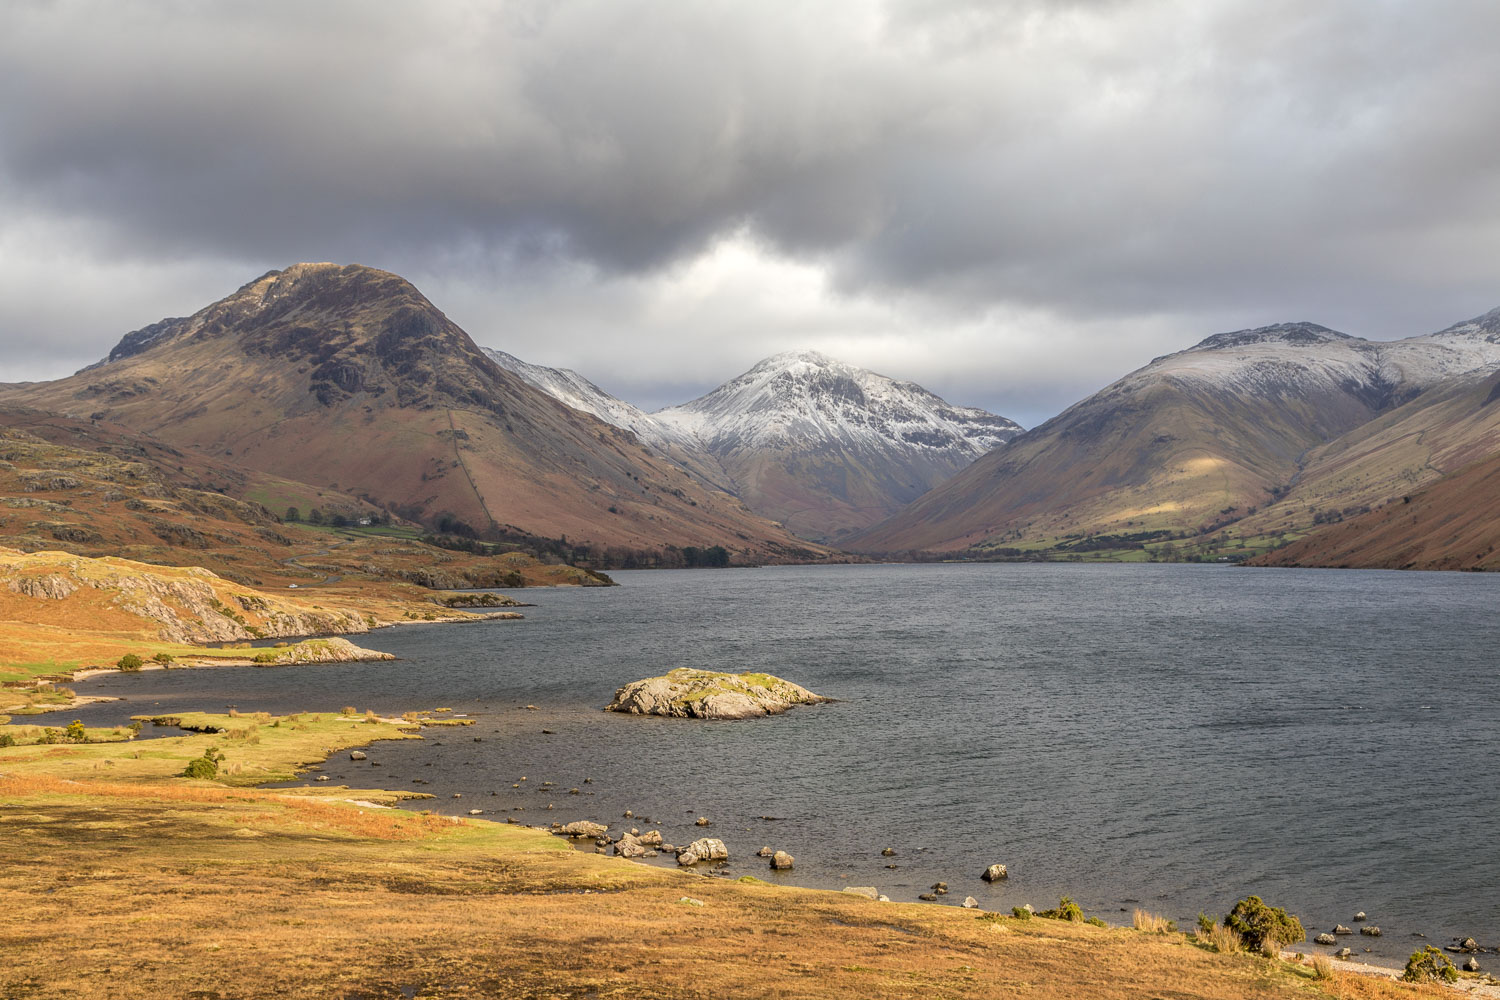 Wast Water view, Wasdale Head view, Britain's favourite view